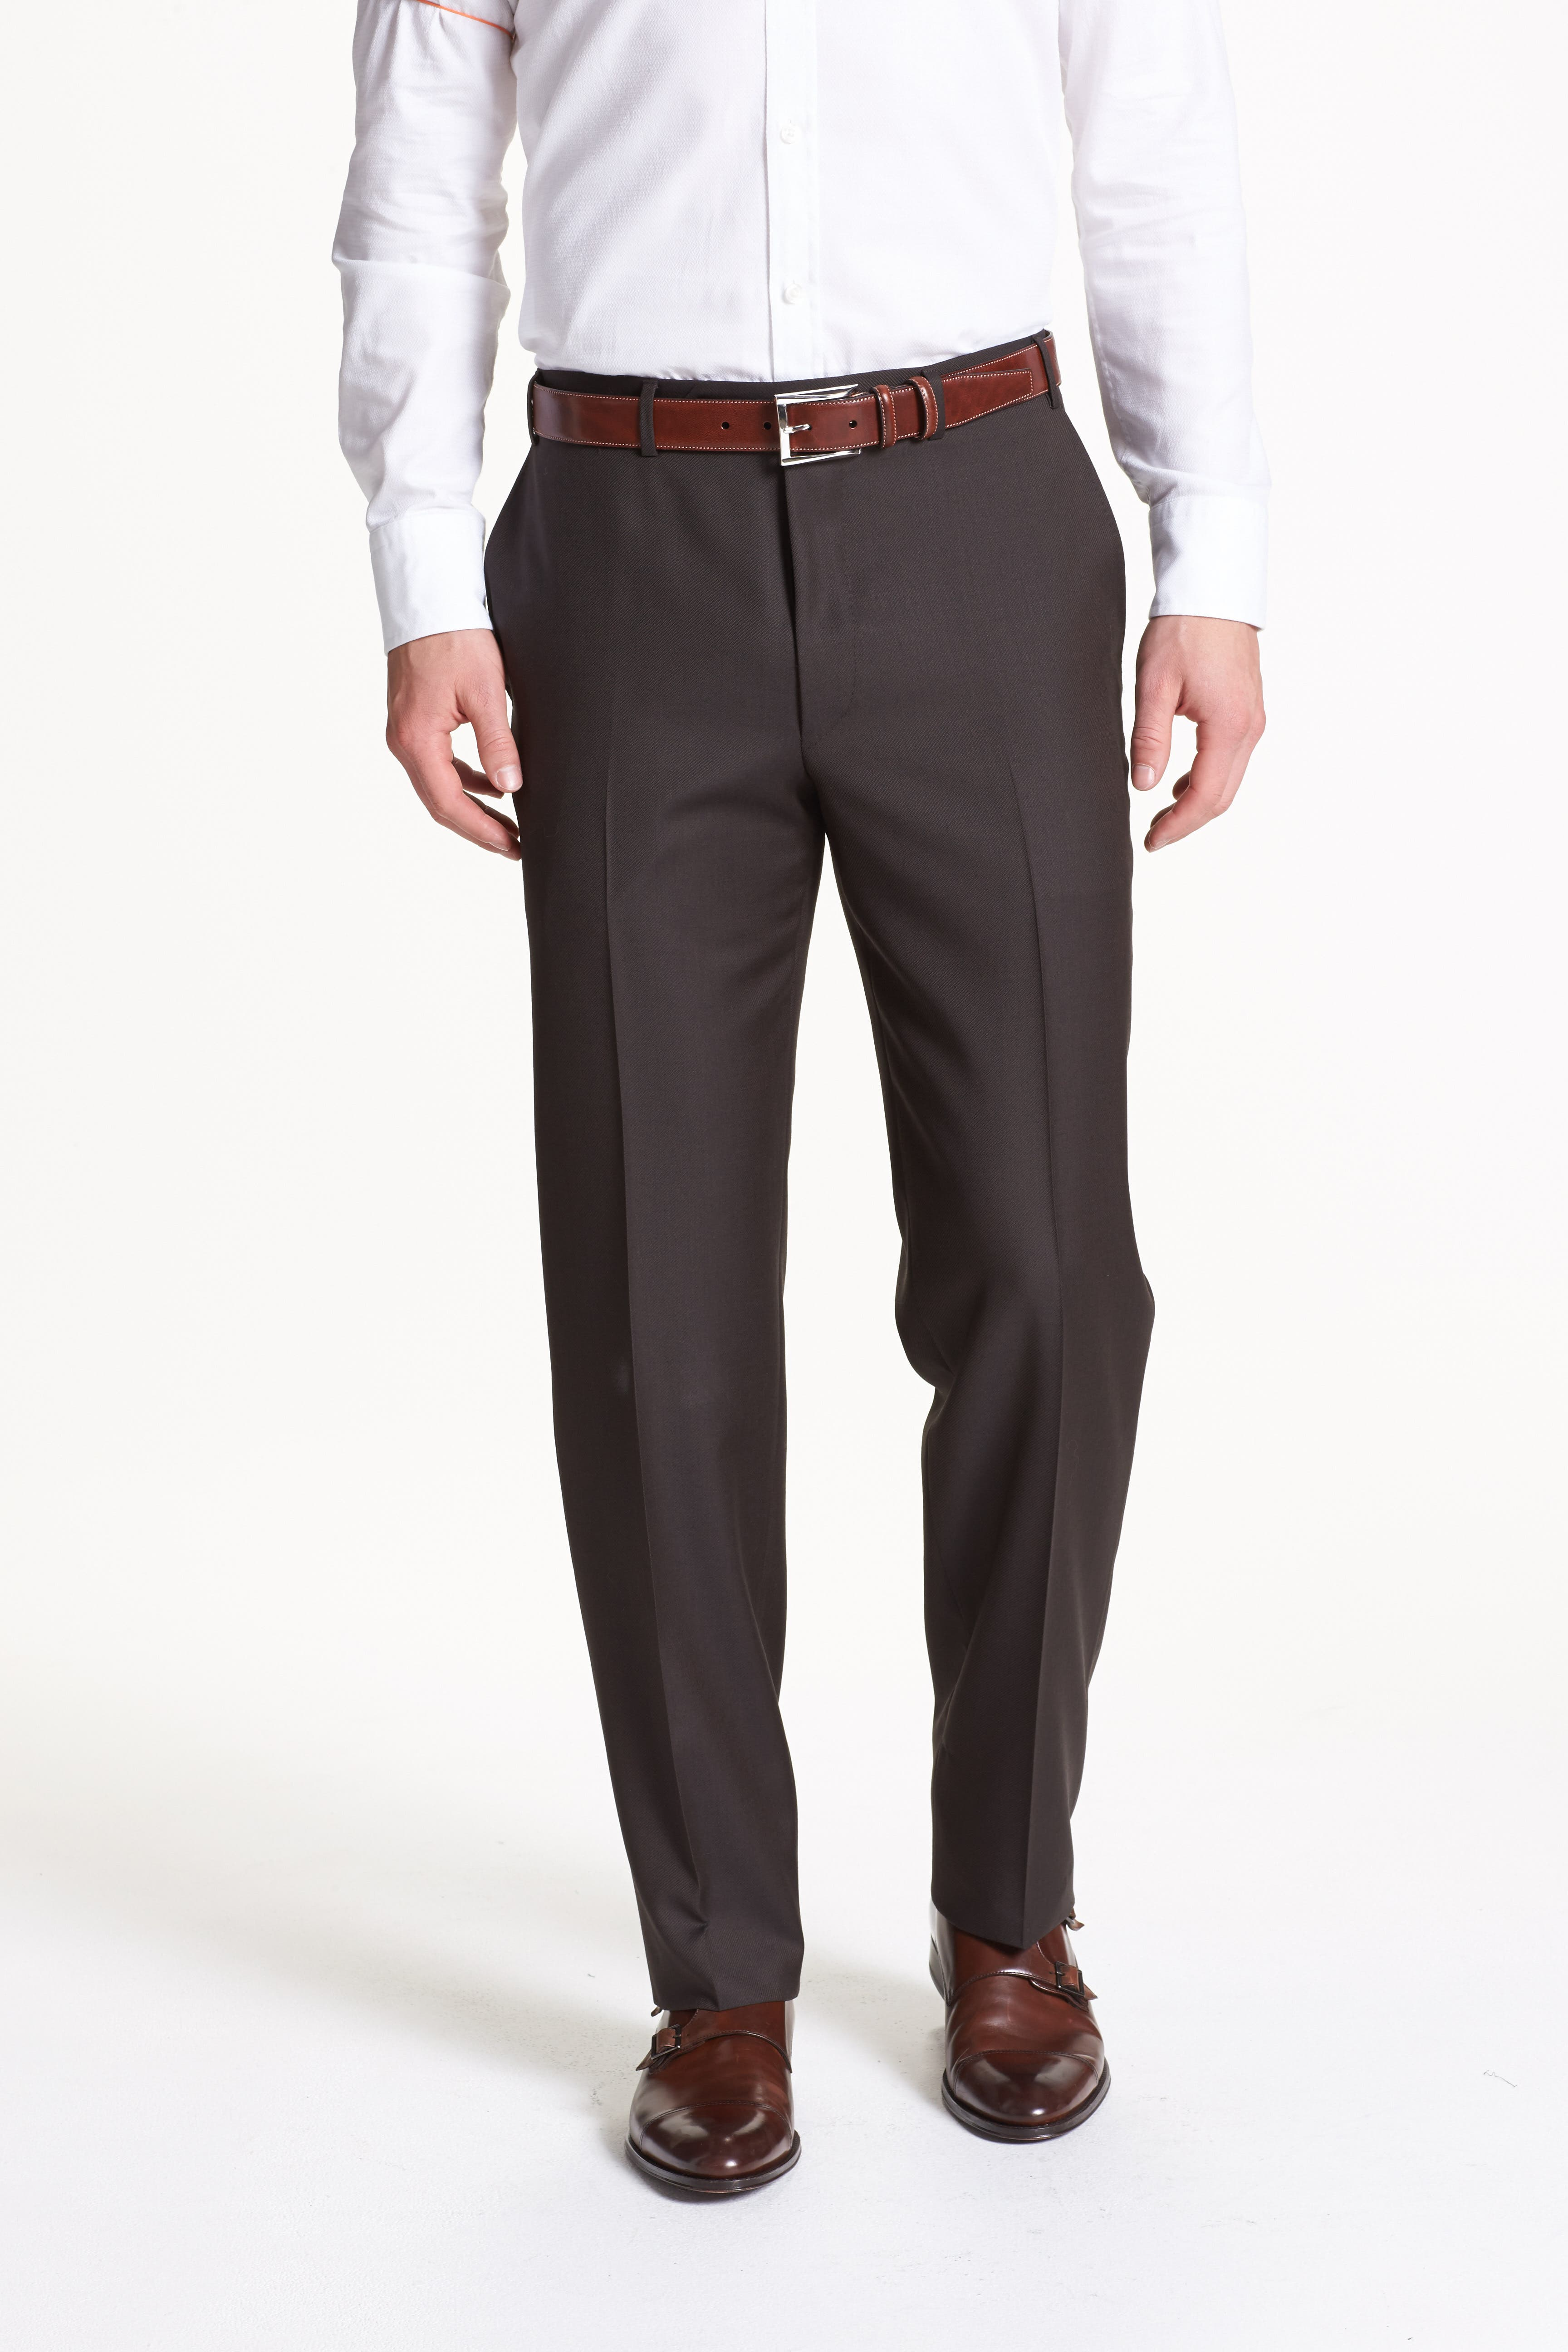 CANALI Flat Front Solid Wool Trousers, Main, color, 201